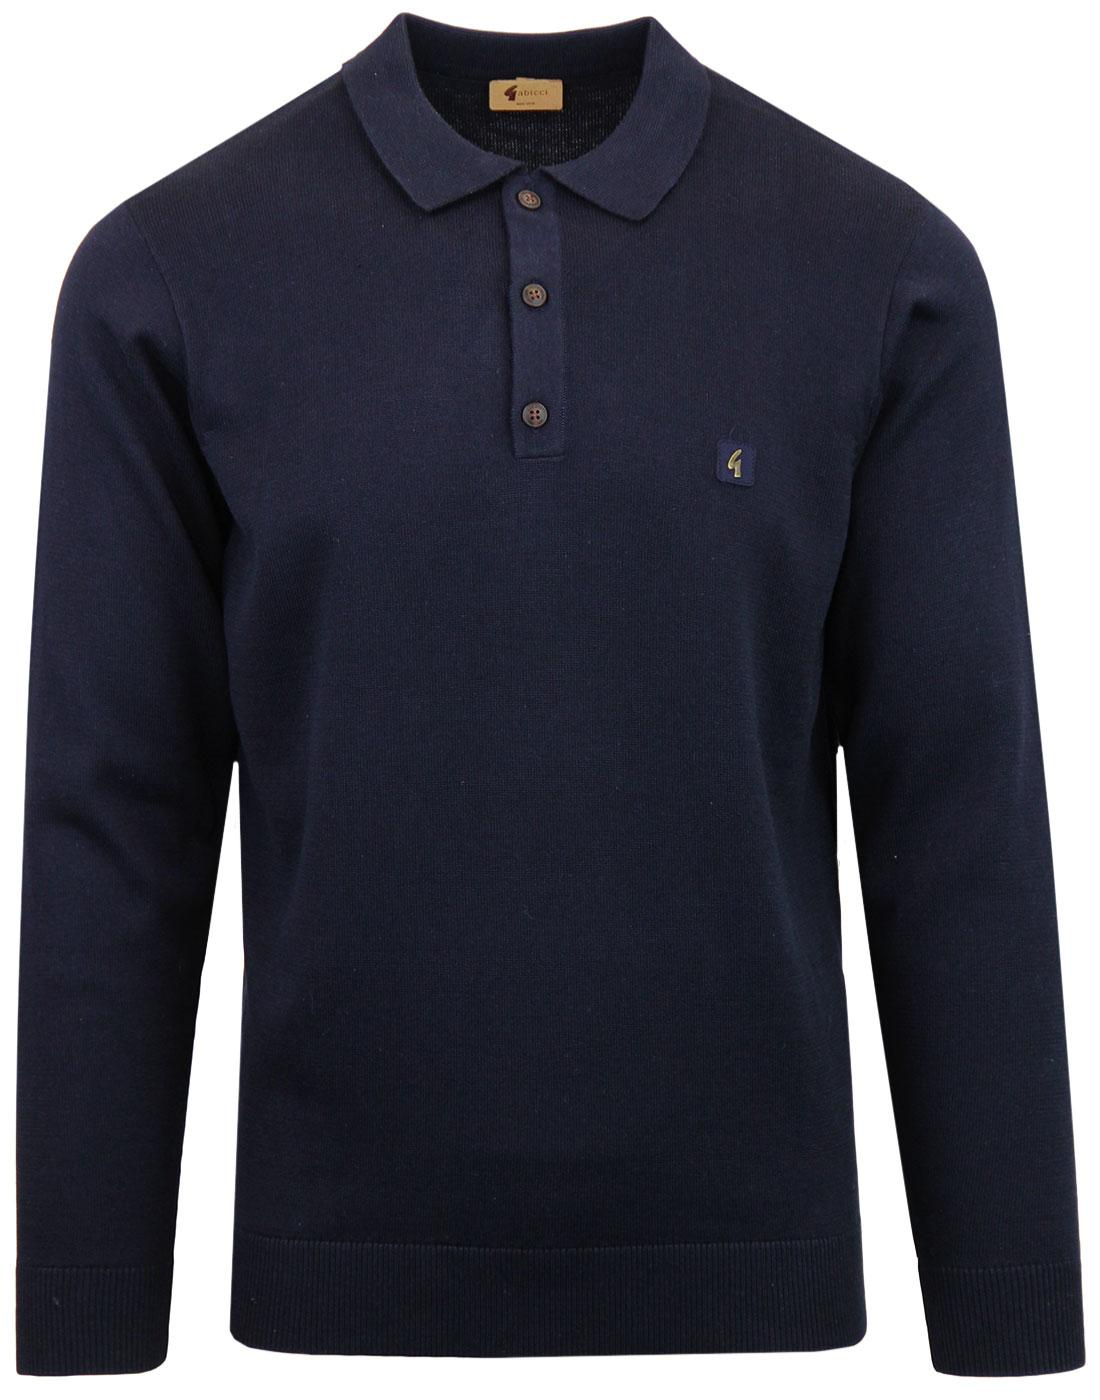 Francesco GABICCI VINTAGE Retro Knit Polo Top NAVY